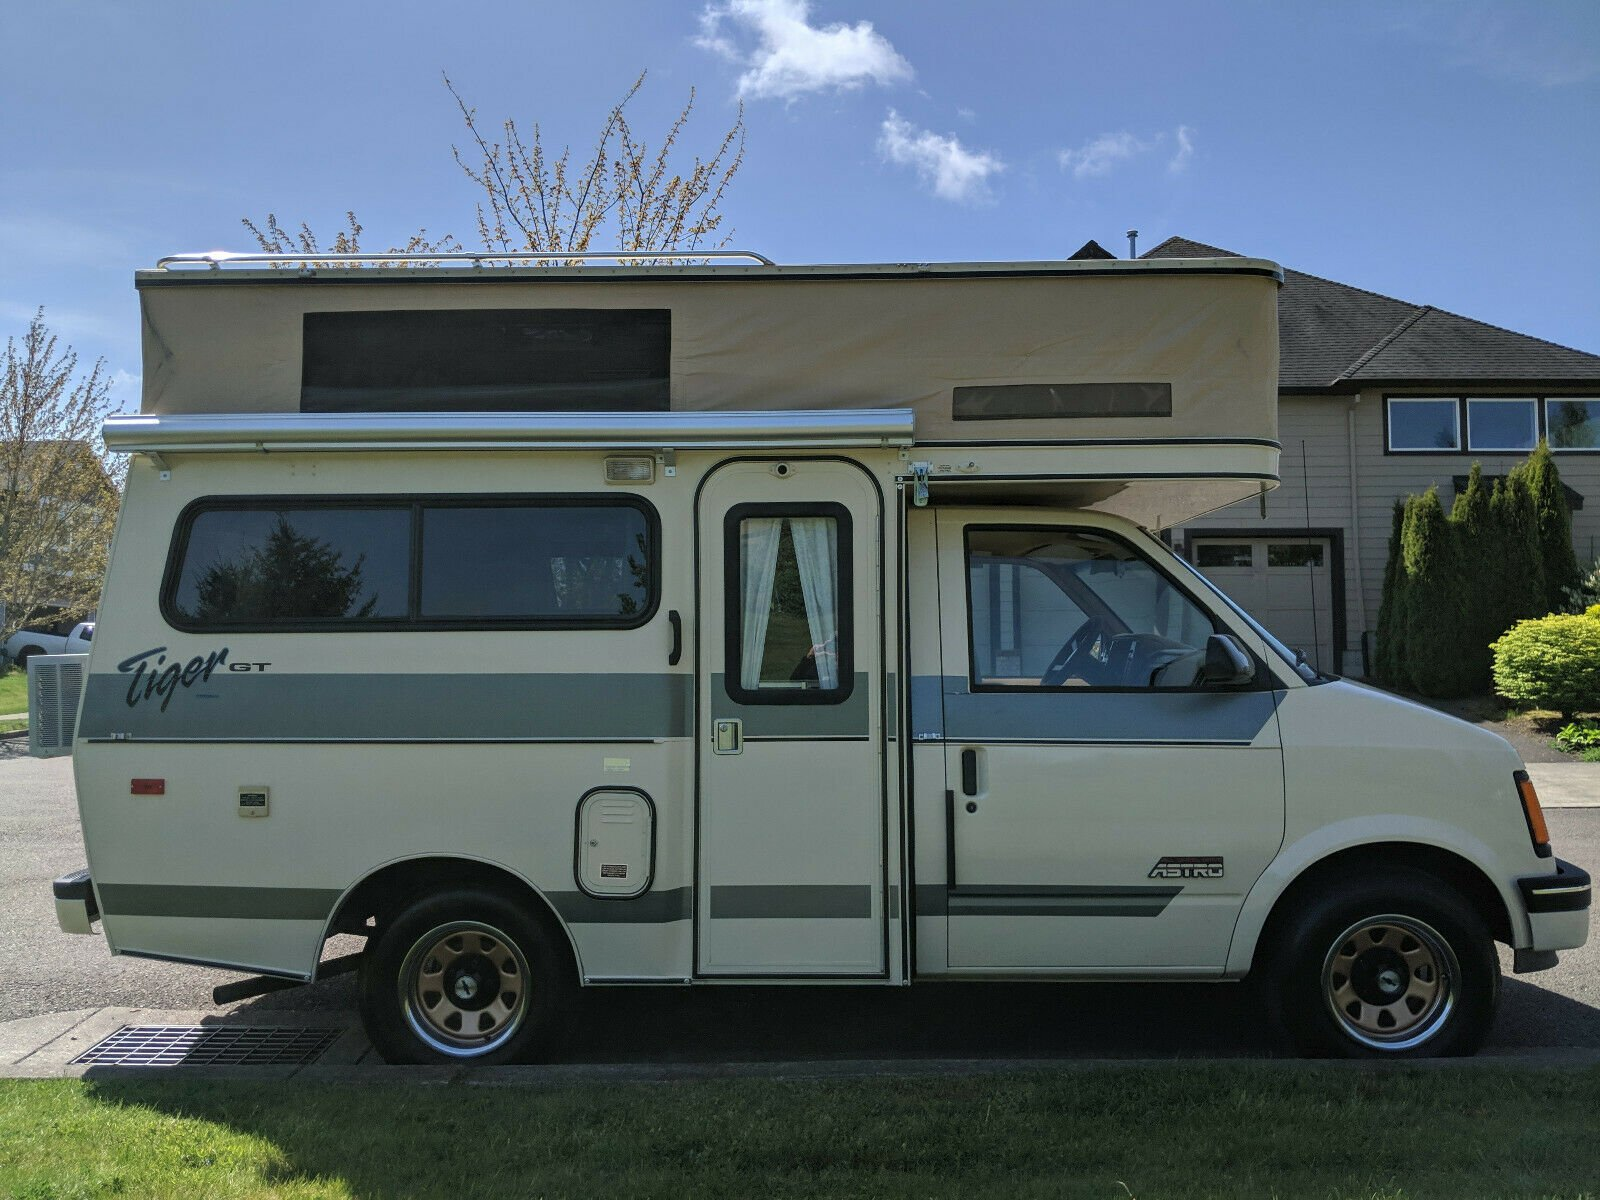 hight resolution of before this rare ride had a bathroom on board it was a chevrolet astro van the astro and its twin the gmc safari were produced for two decades